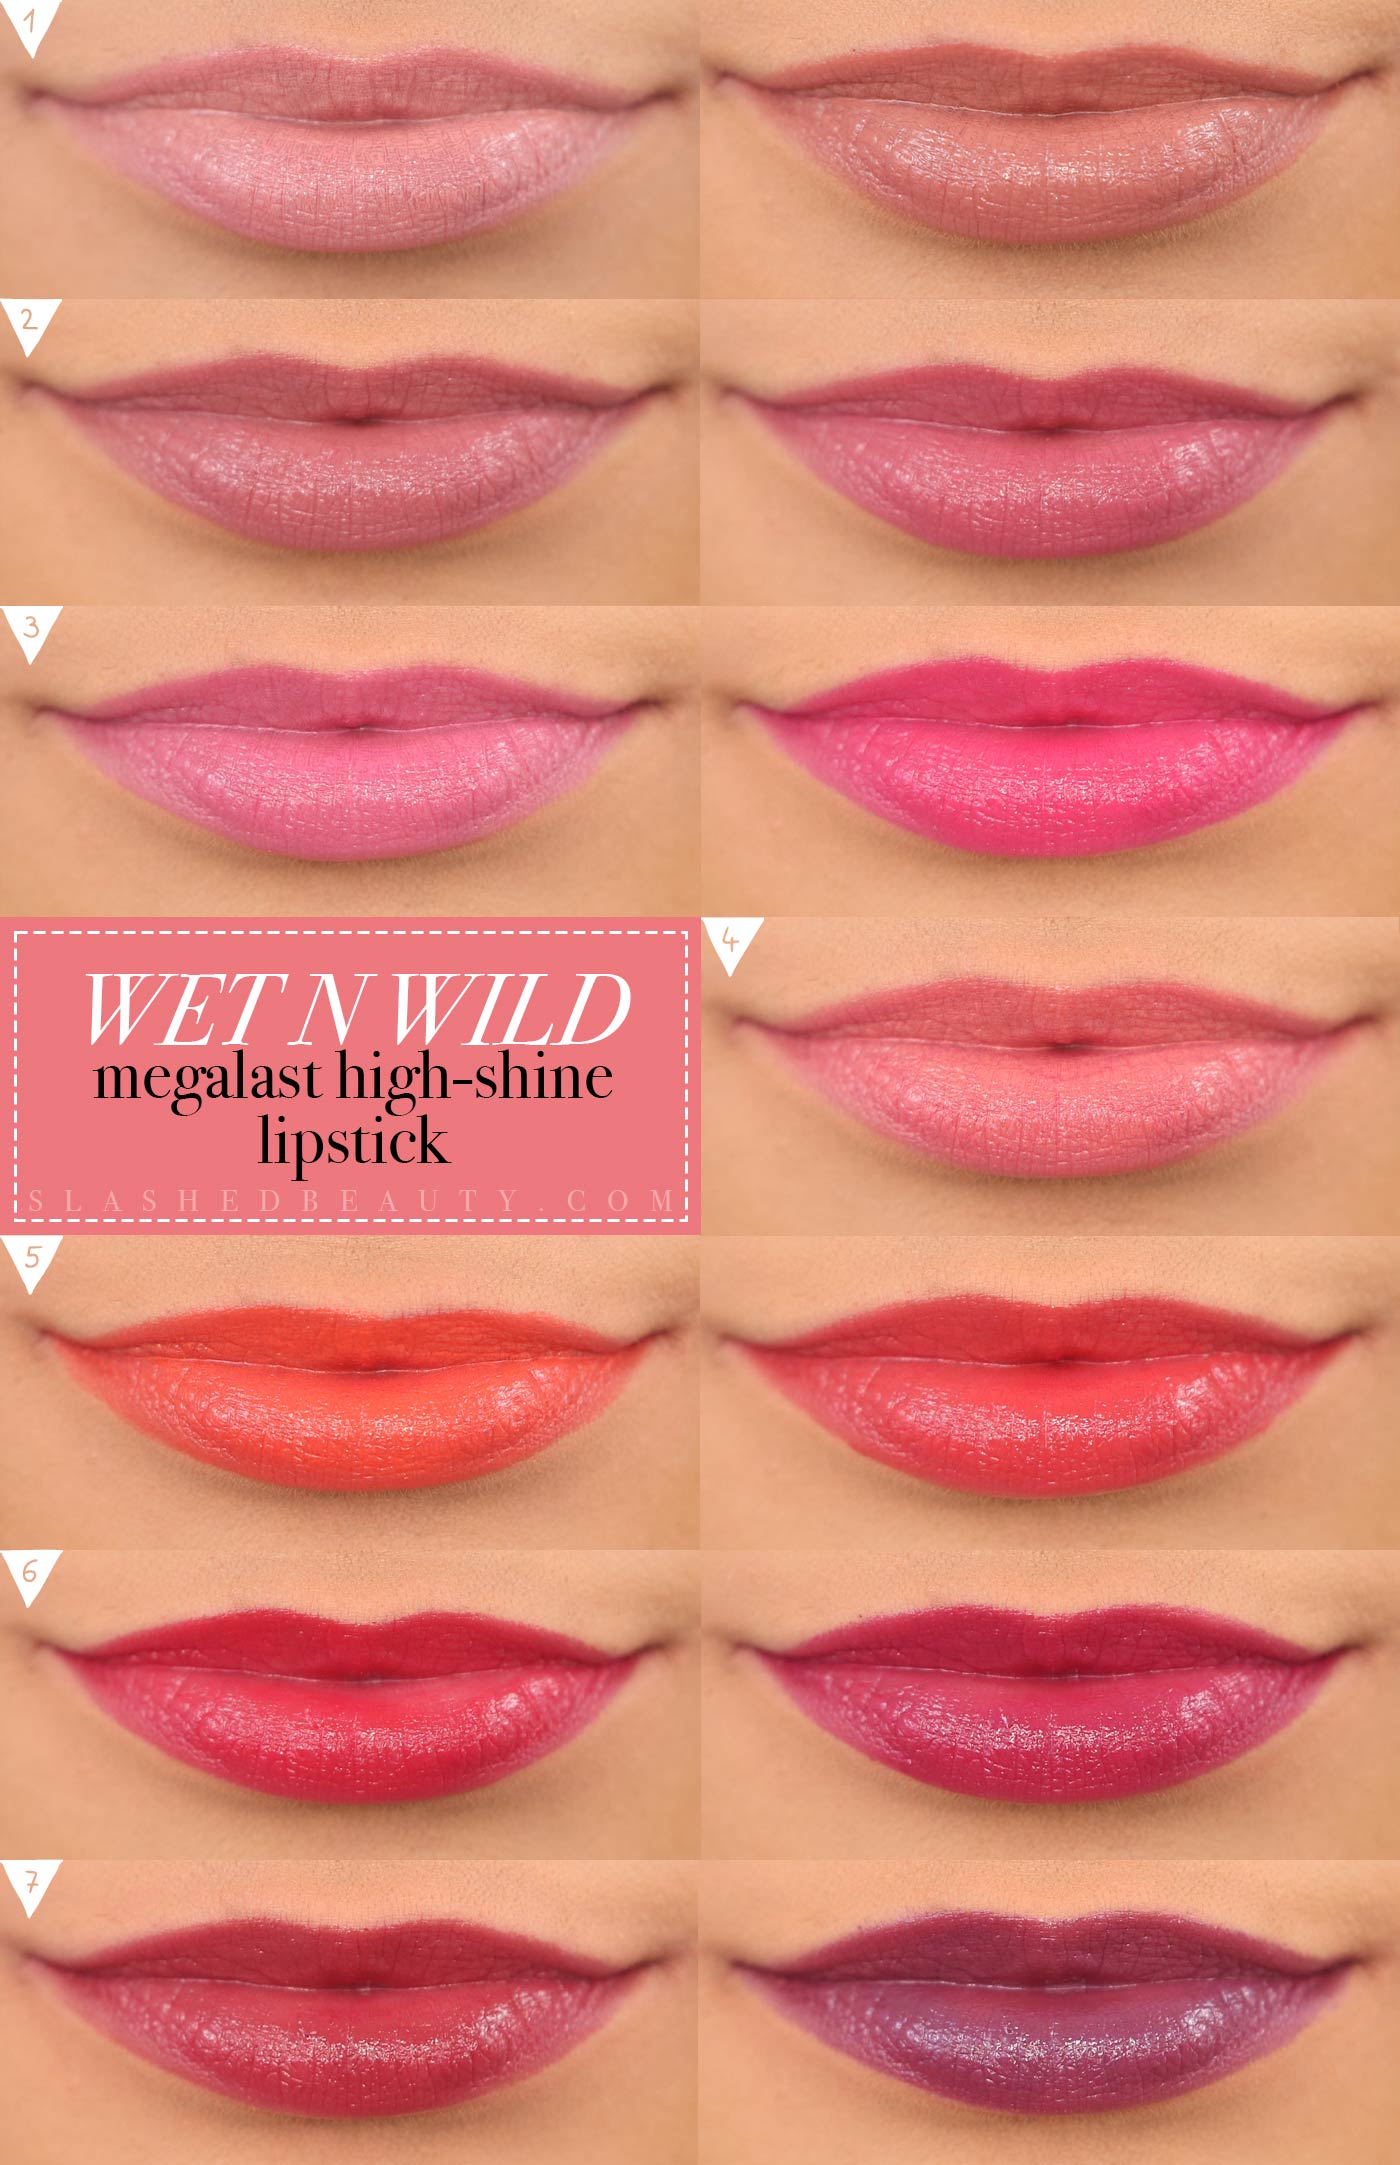 Wet n Wild Megalast High-Shine Lipsticks Swatches Full Collection | Shiny Drugstore Lipsticks | Slashed Beauty